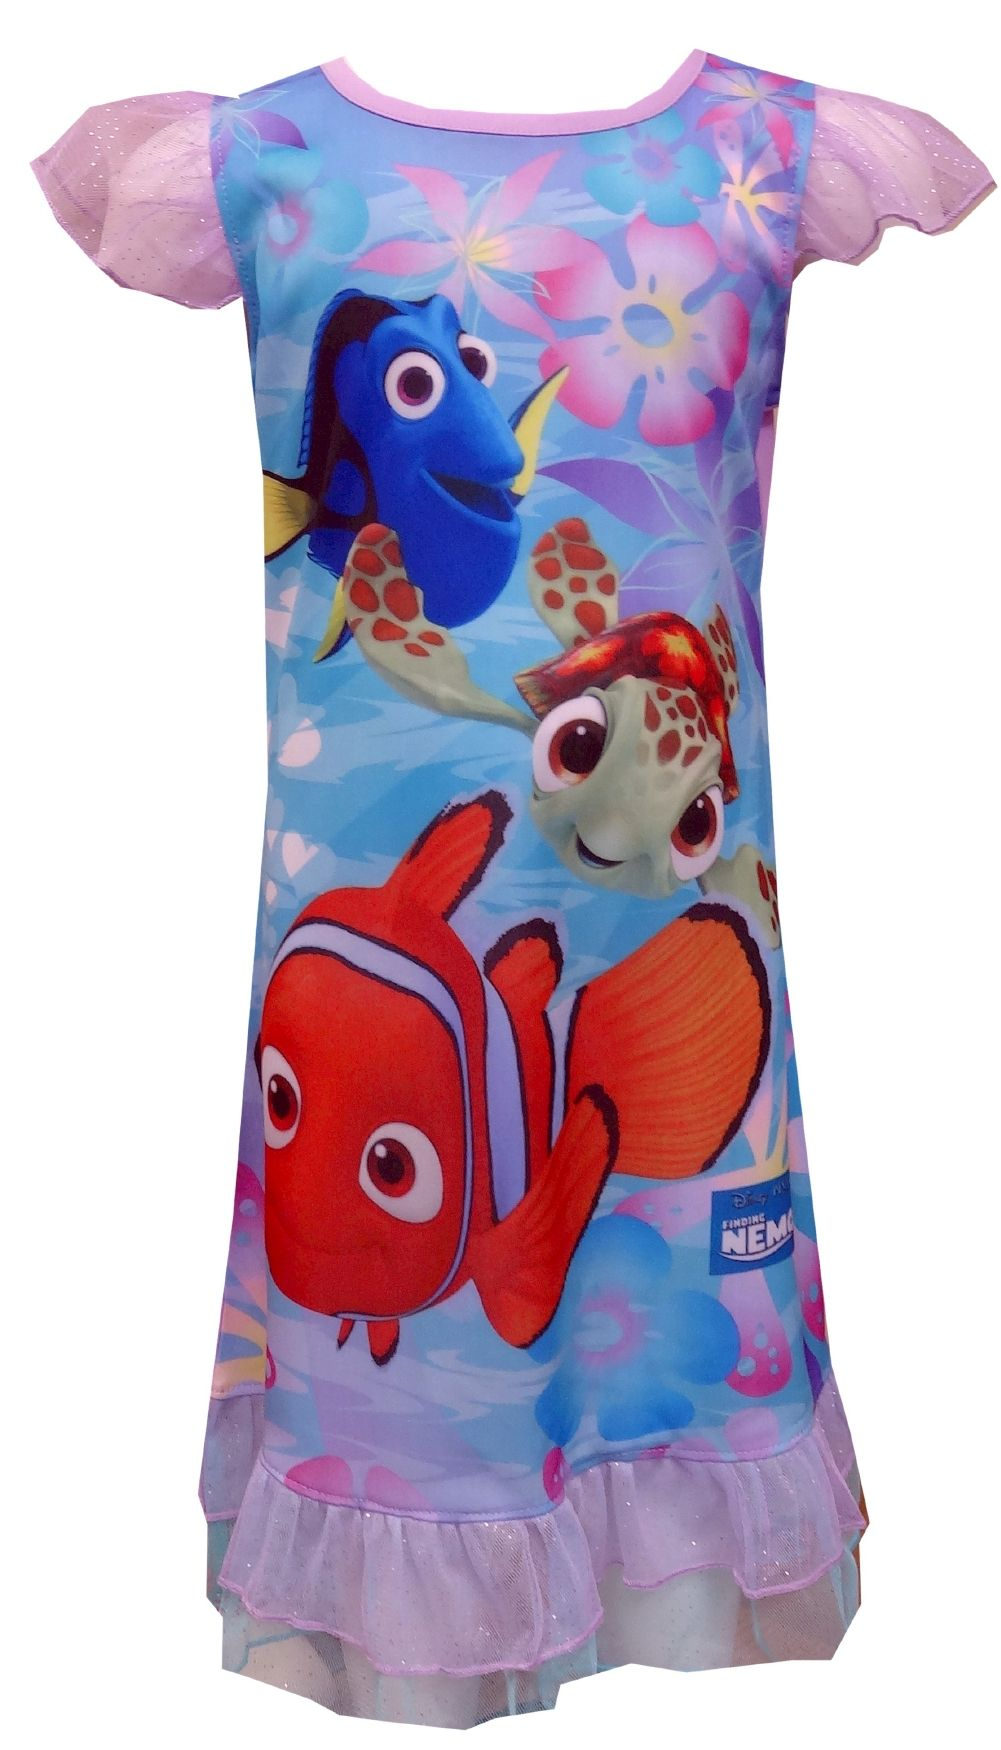 Disney Pixar Finding Nemo Toddler Nightgown Perfect For -4735